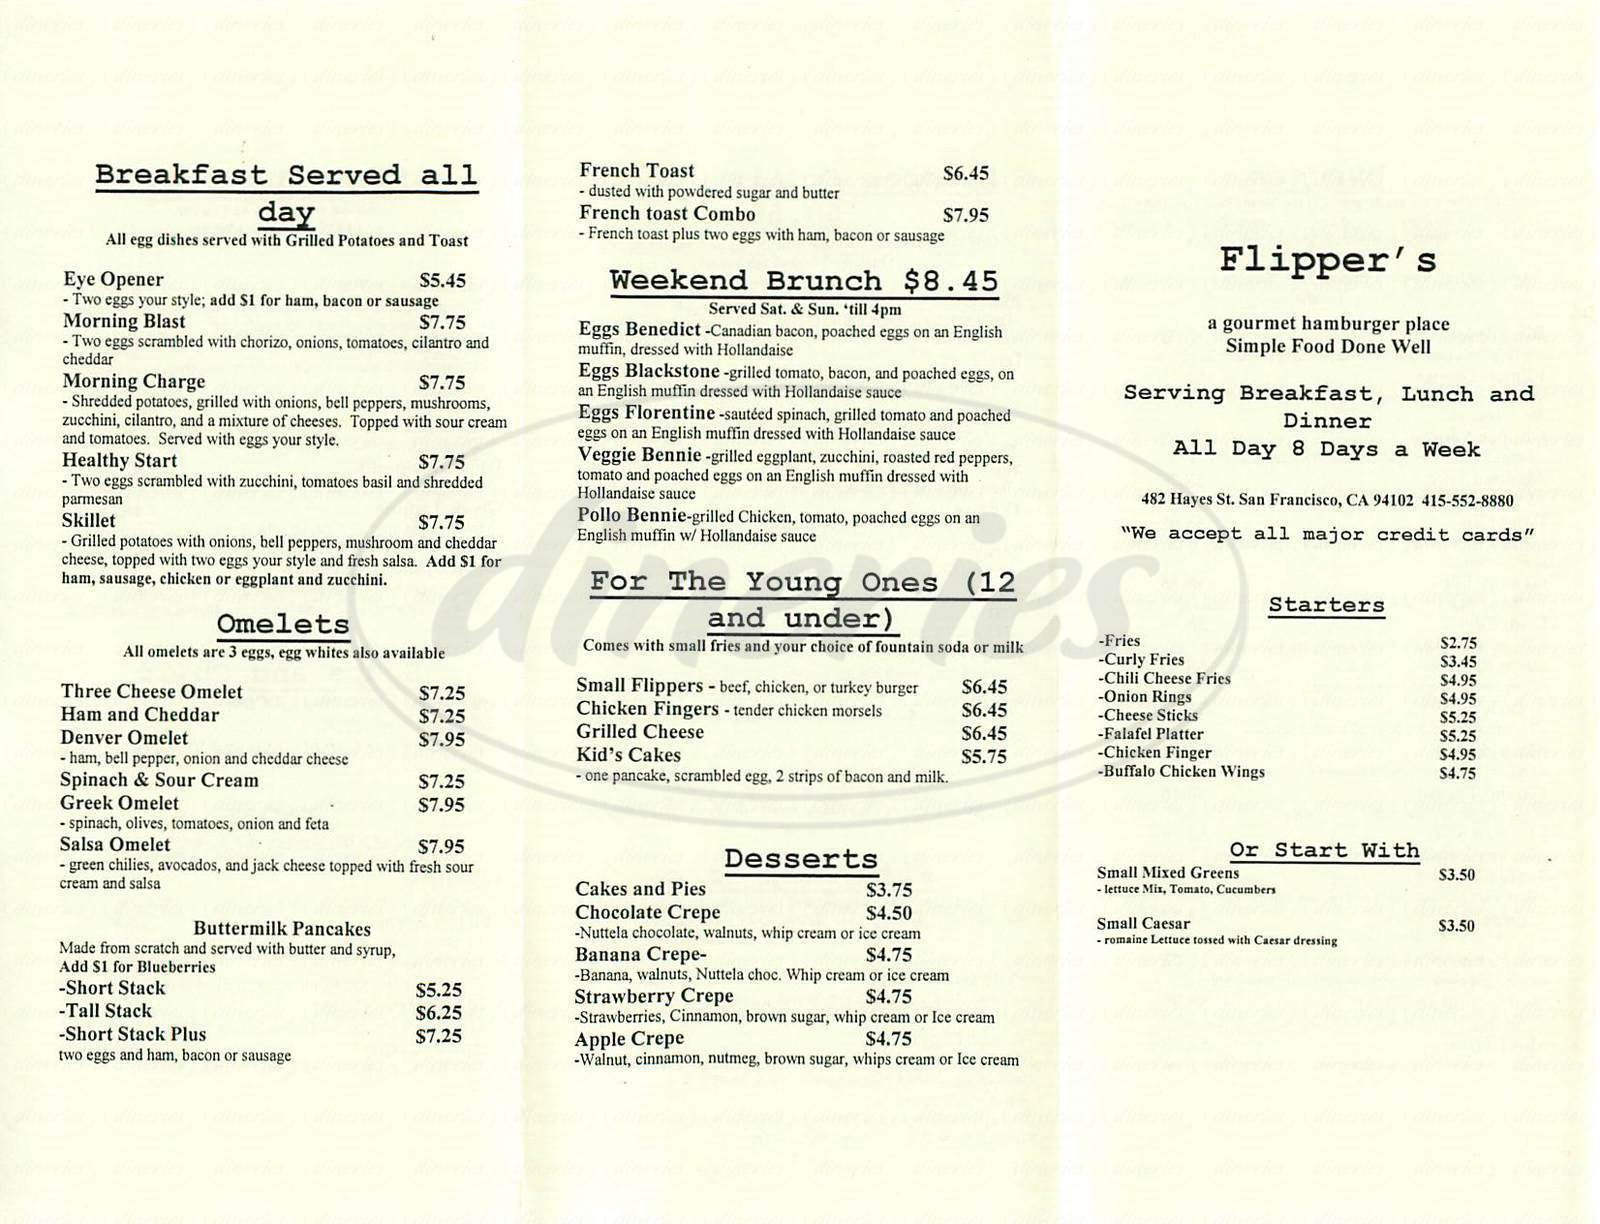 menu for Flipper's Gourmet Hamburgers